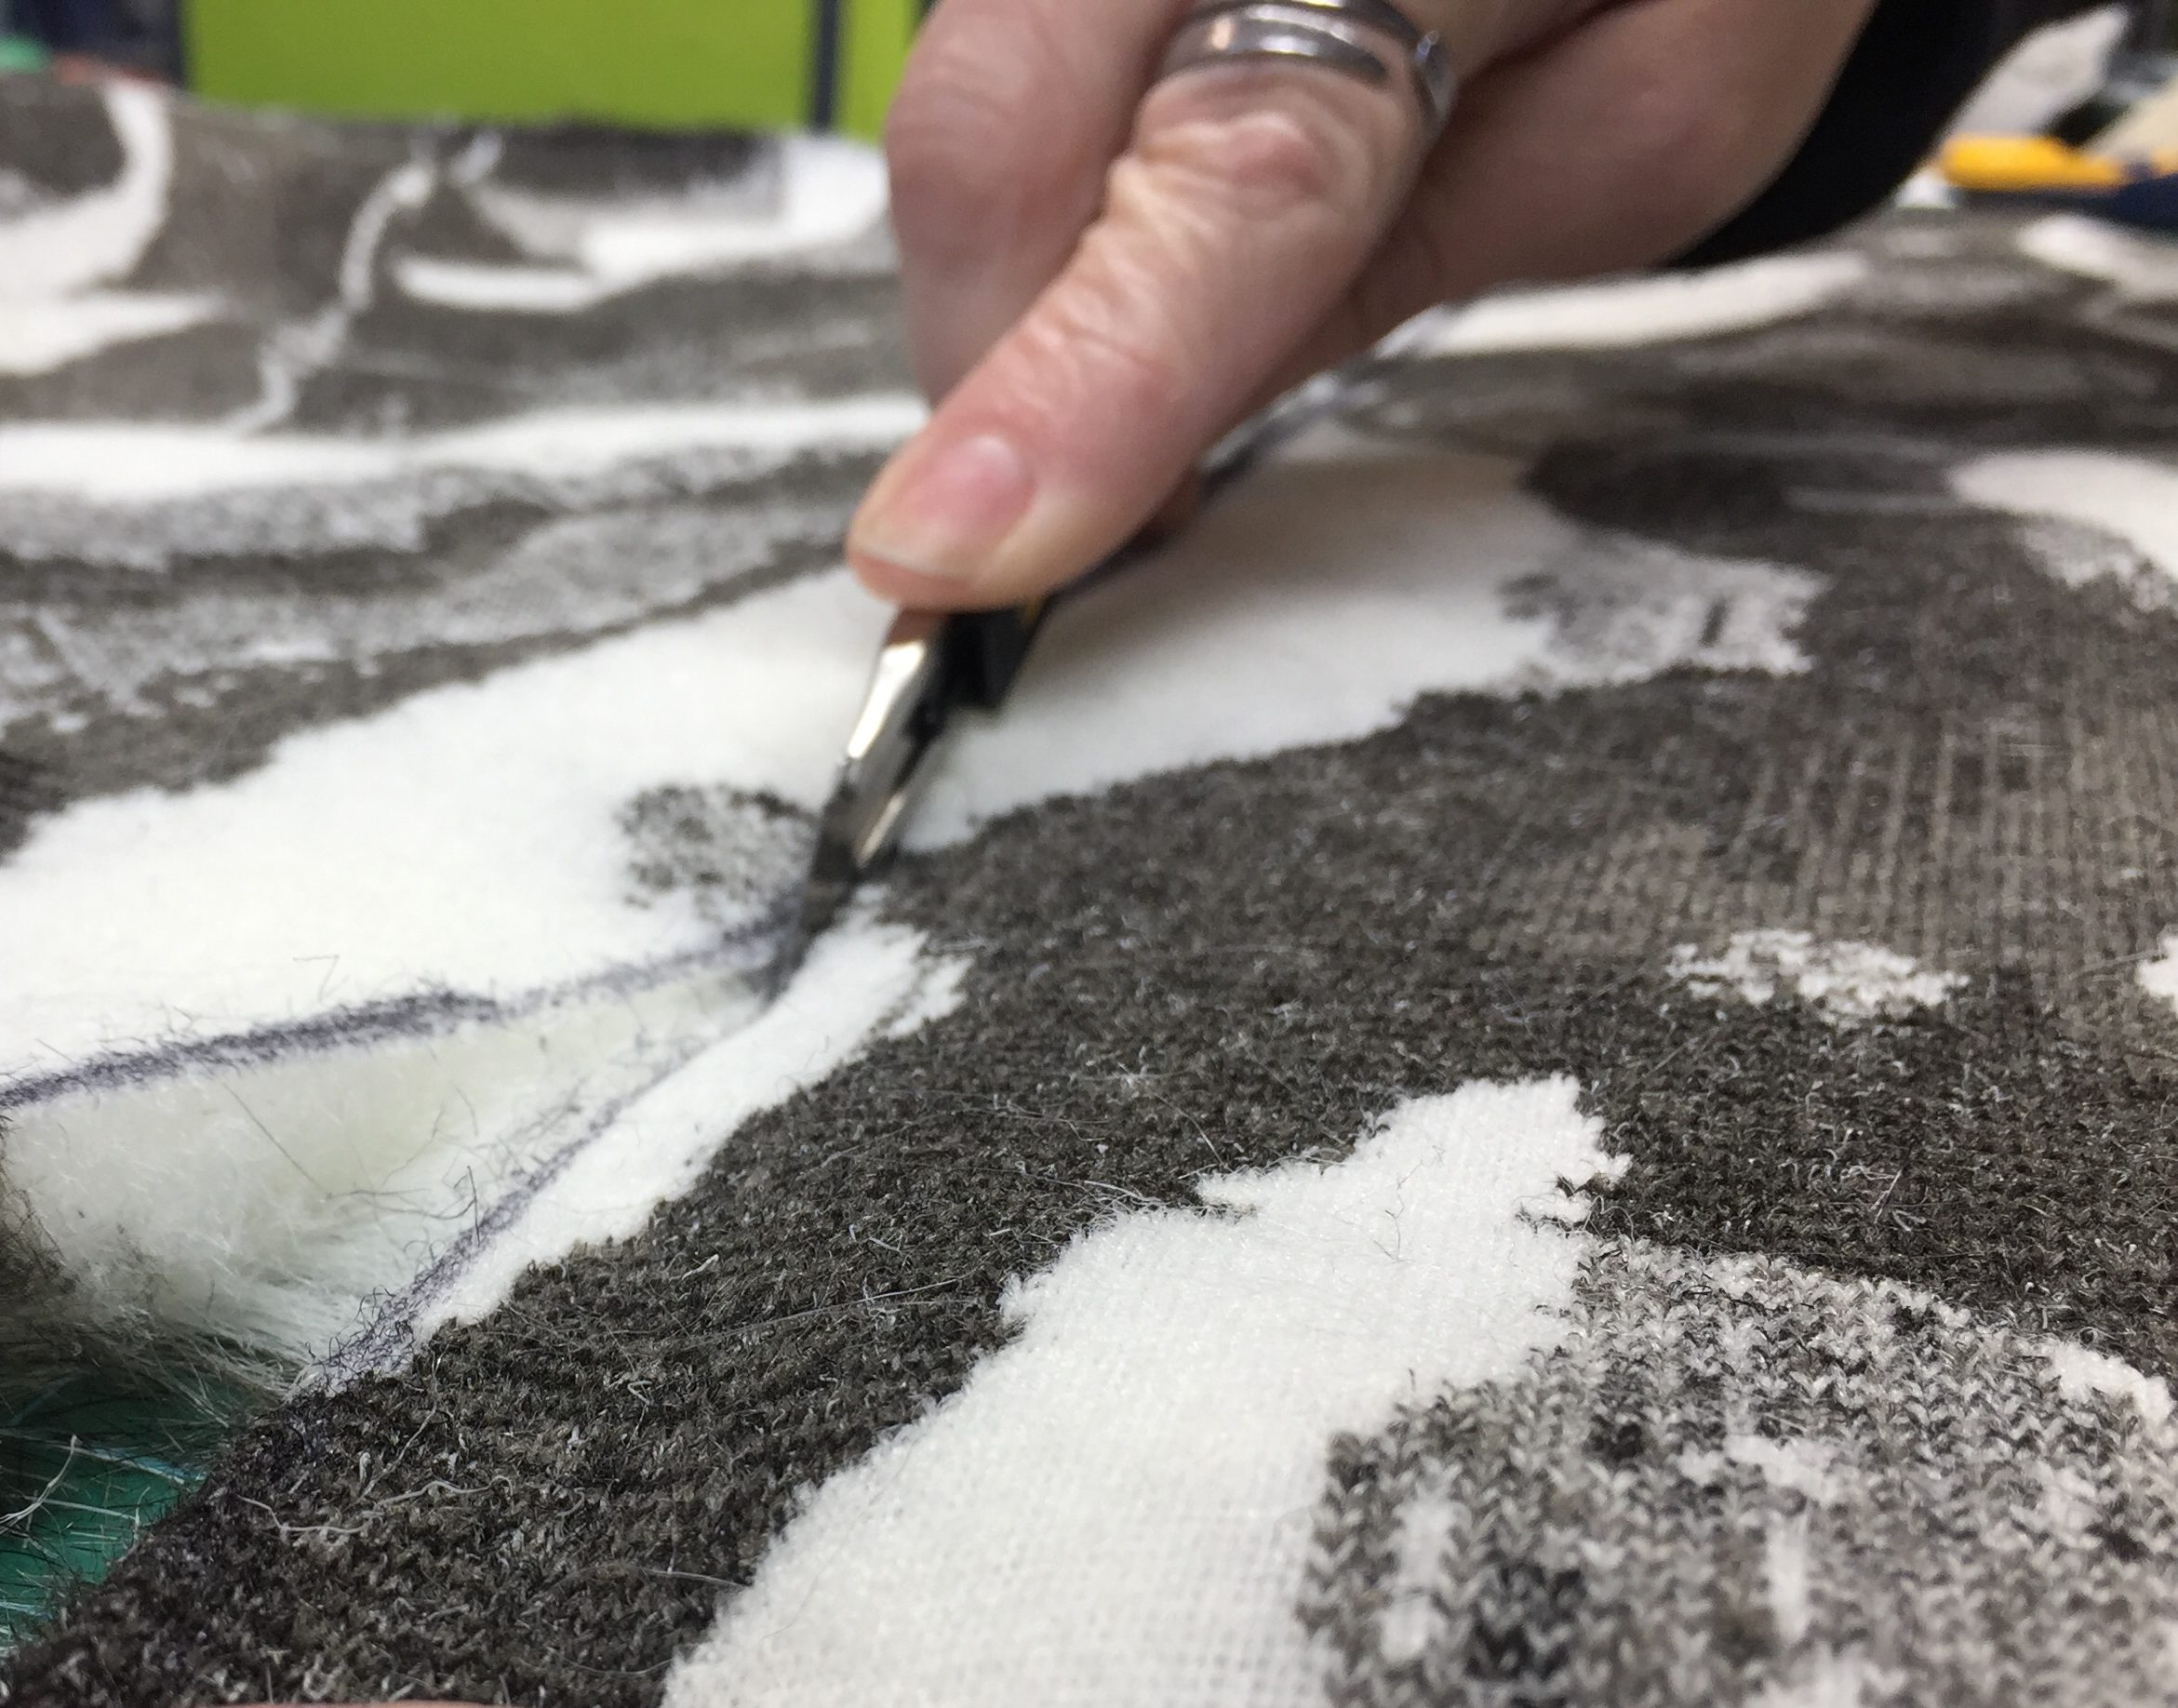 Cutting Faux Fur: more accuracy and less mess